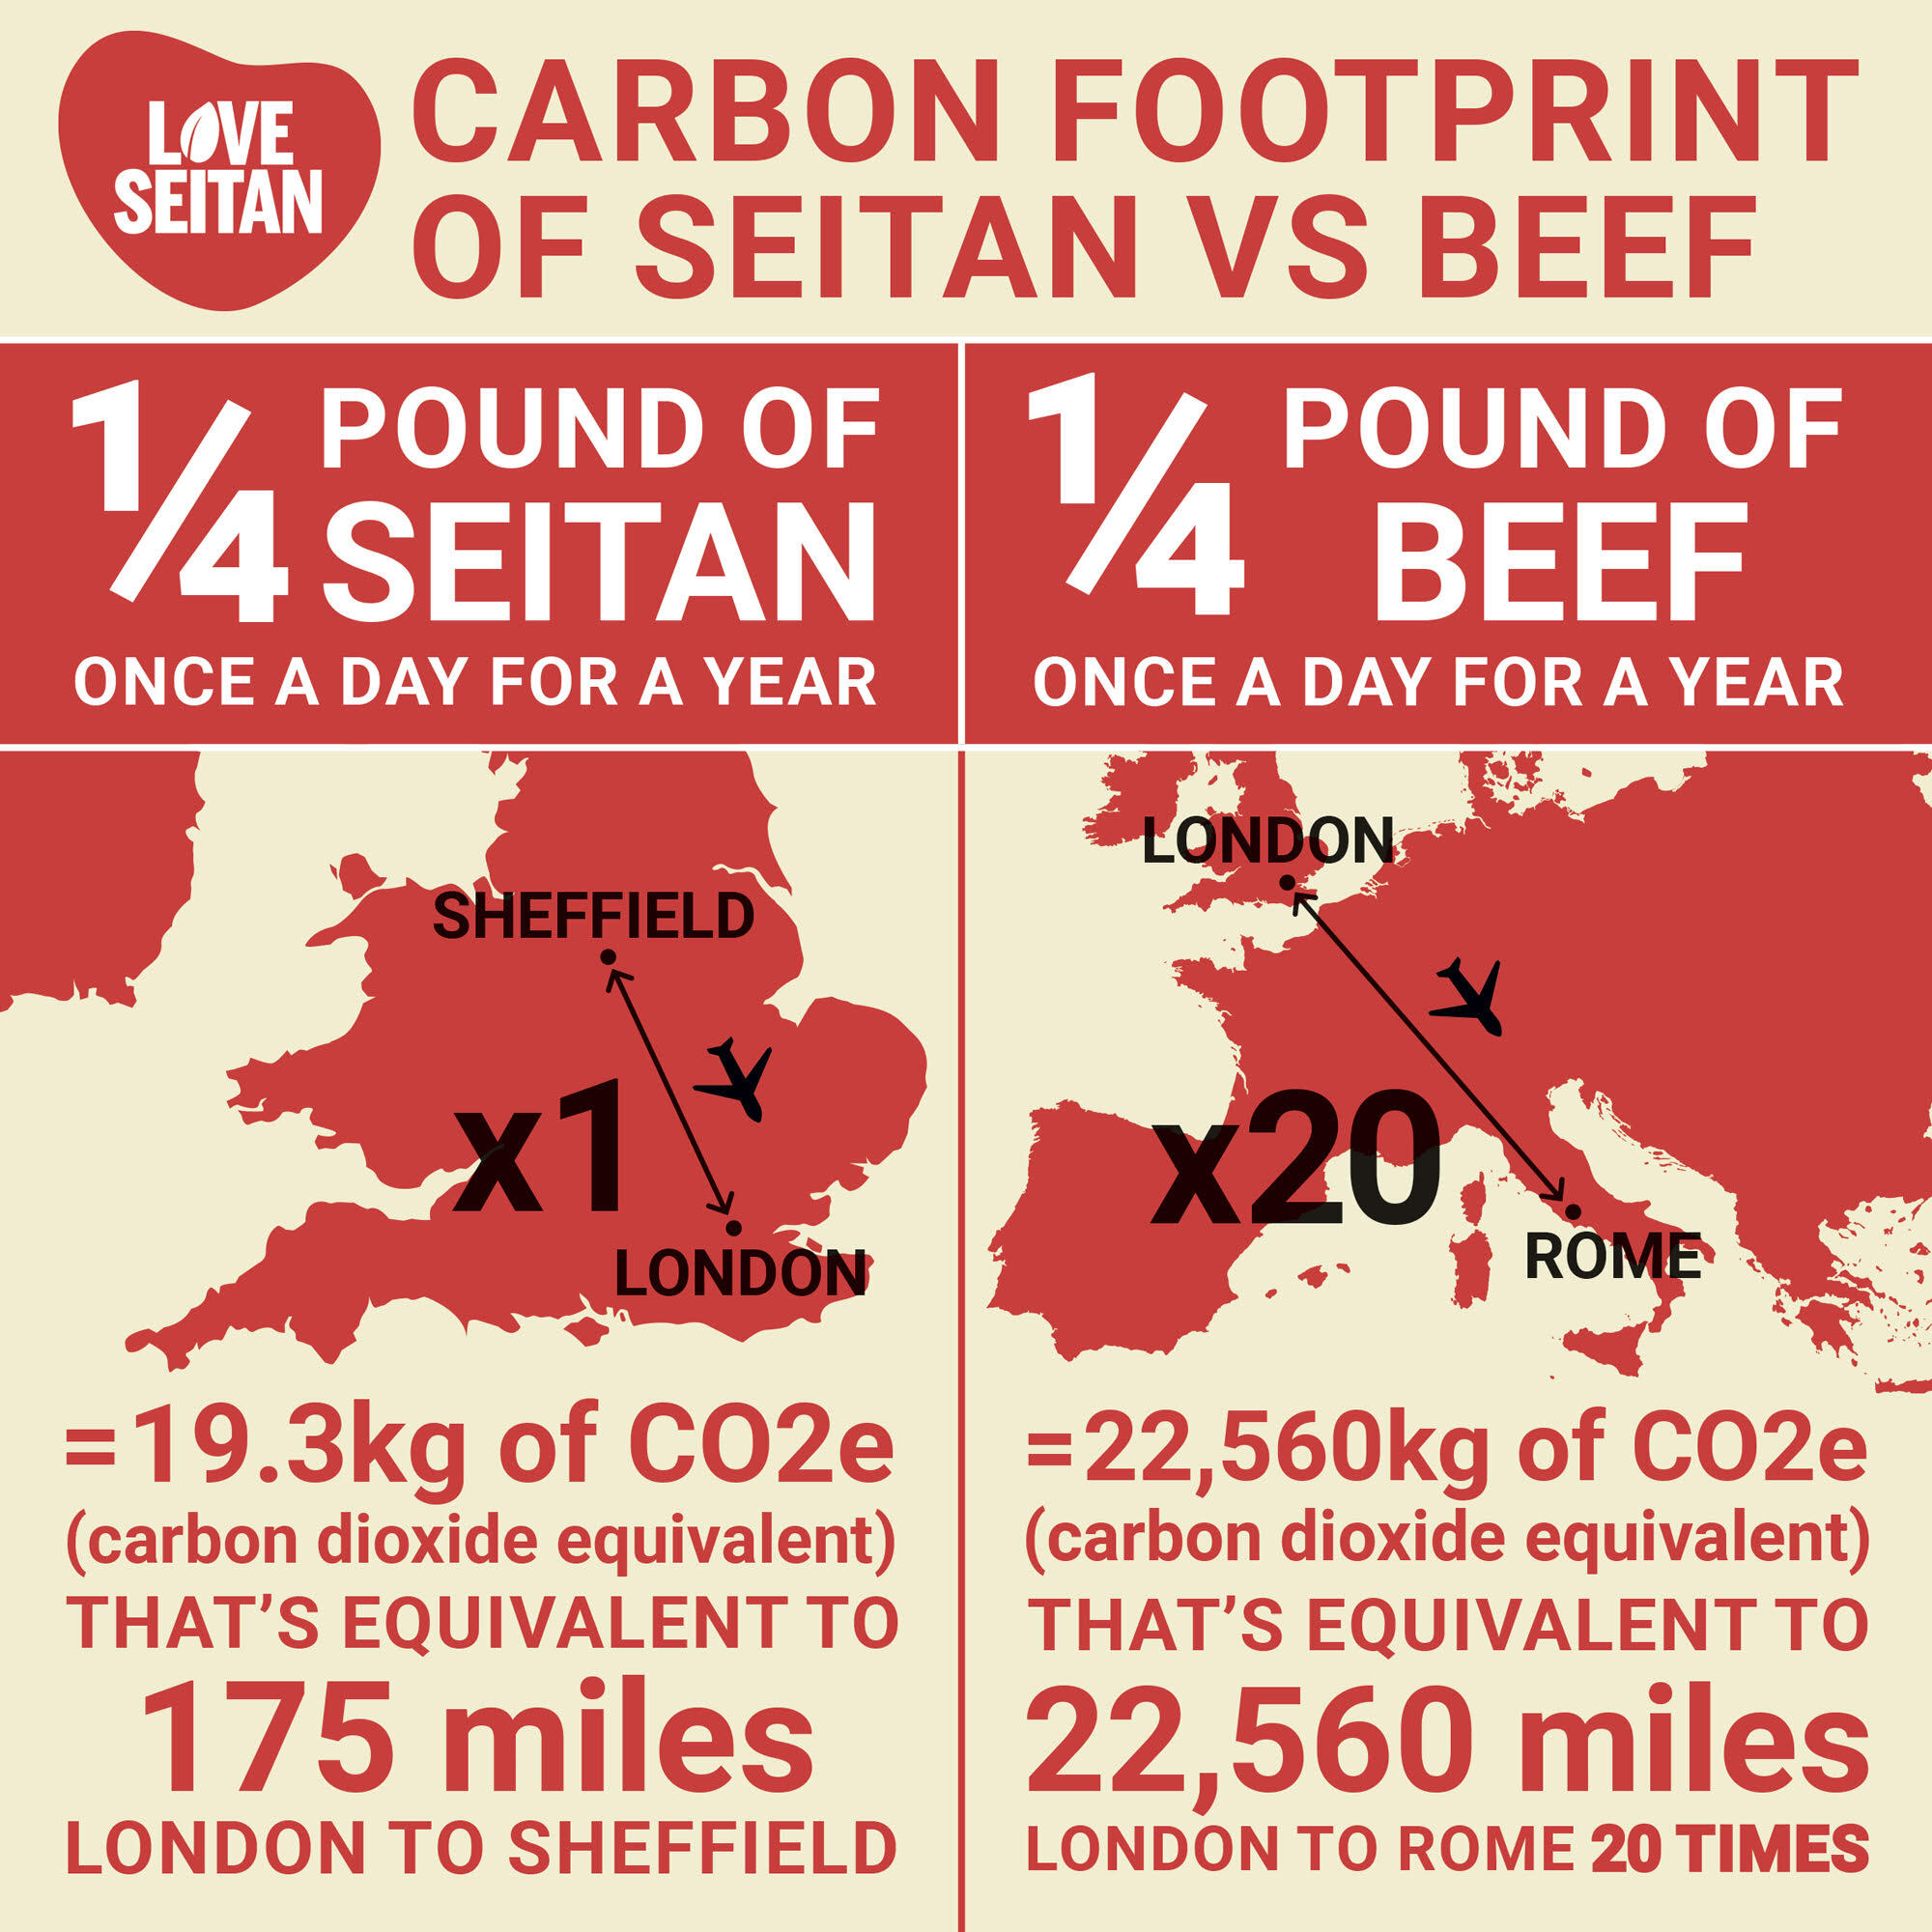 ¼ POUND OF BEEF PER DAY SAME AS 10.6 RETURN FLIGHTS TO ROME (SAME AS FLYING AROUND THE EARTH)